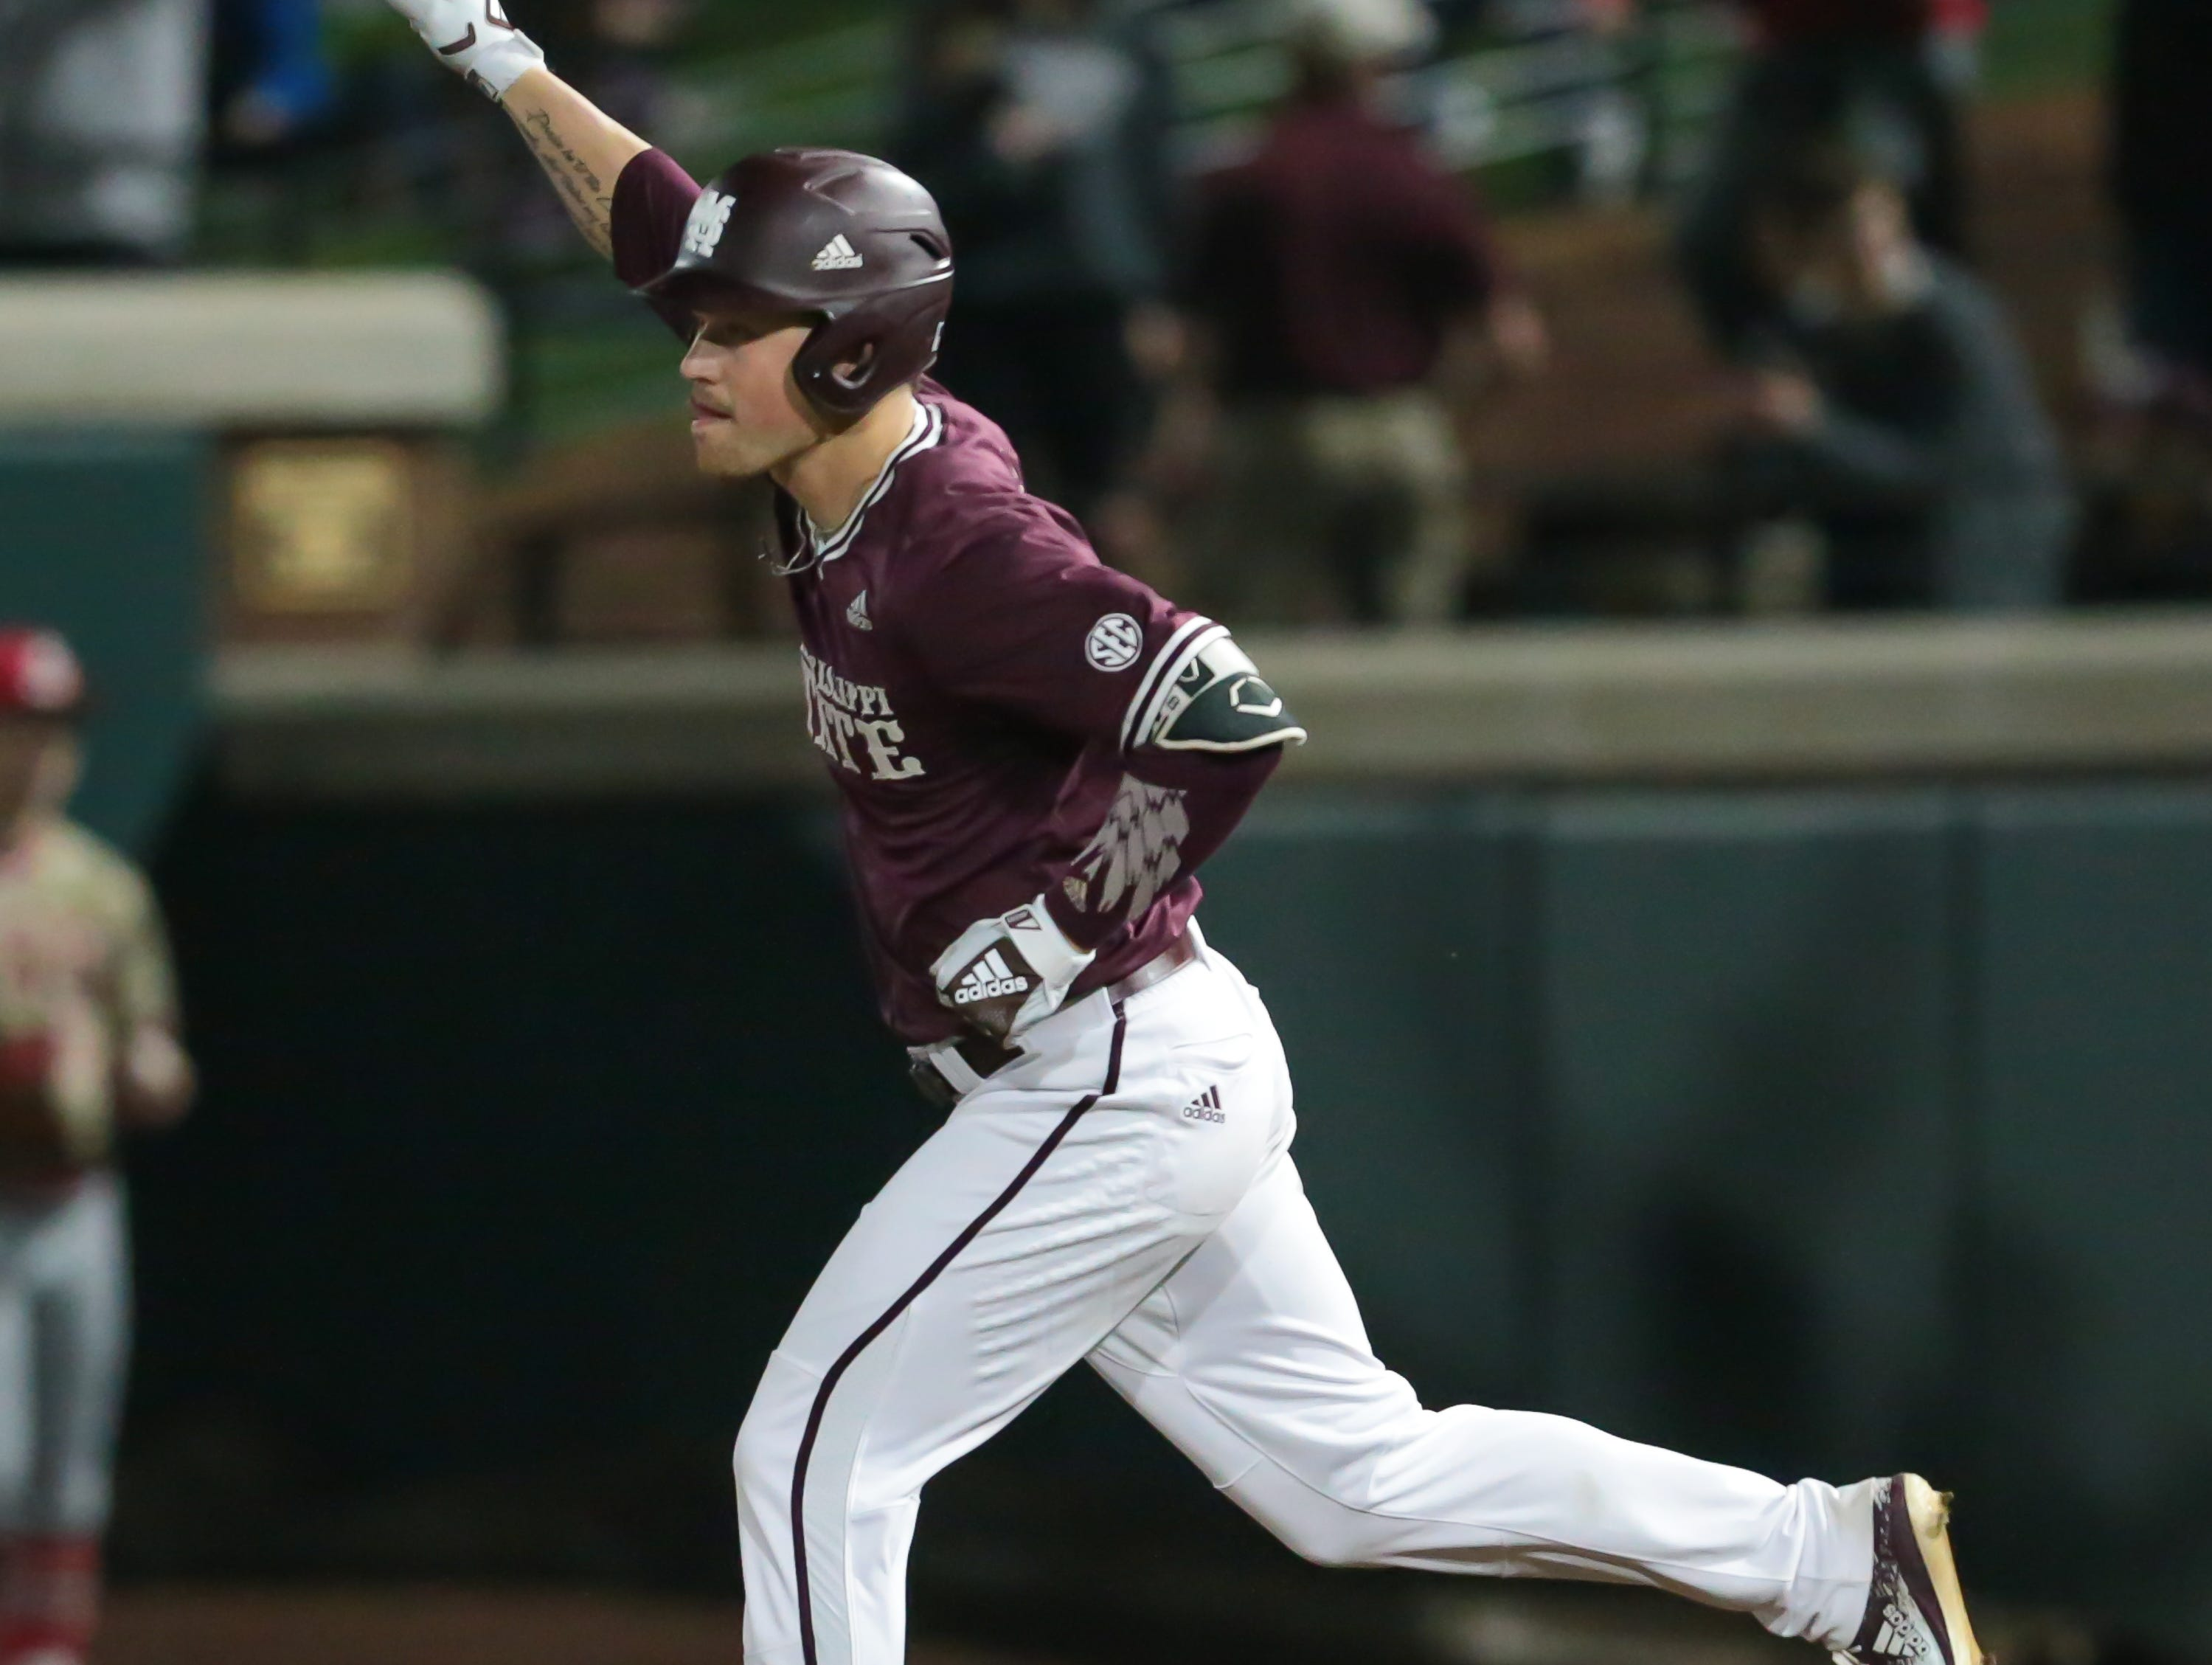 Mississippi State's Elijah MacNamee (40) celebrates after hitting a home run. Mississippi State opened the 2019 baseball season against Youngstown State on Friday, February 15, 2019. Photo by Keith Warren